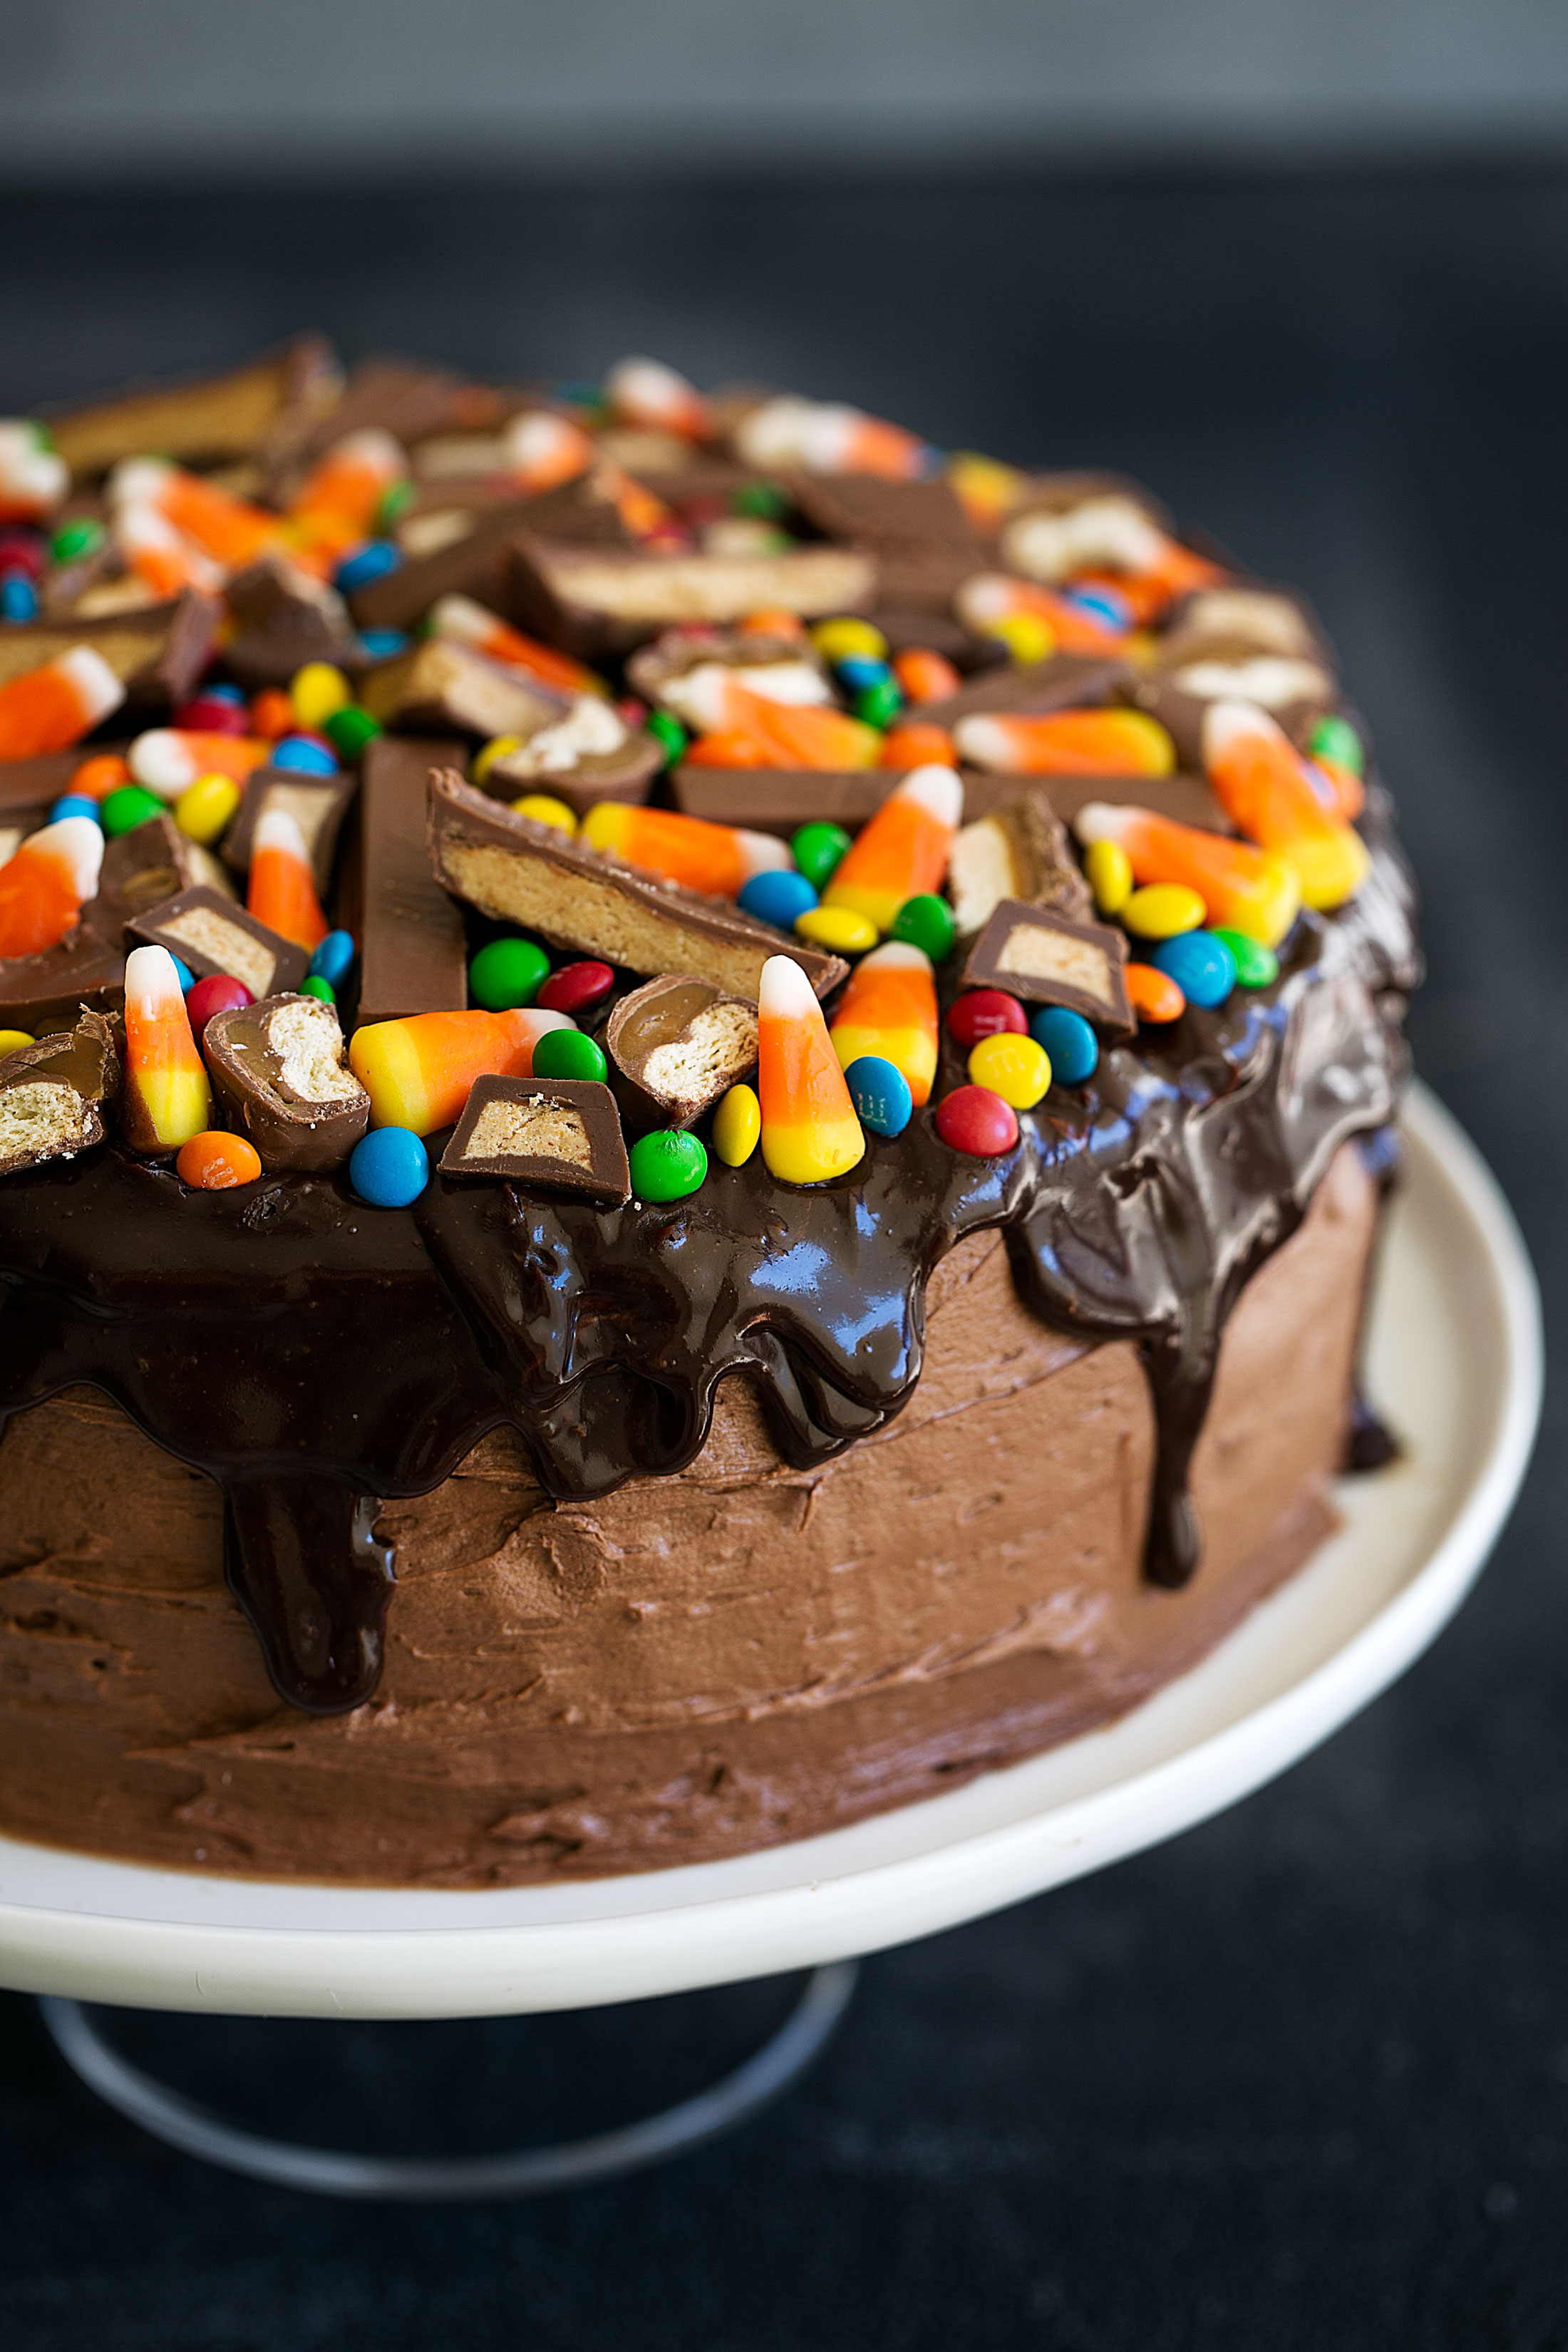 Chocolate Cake with Chocolate Ganache & Halloween Candy